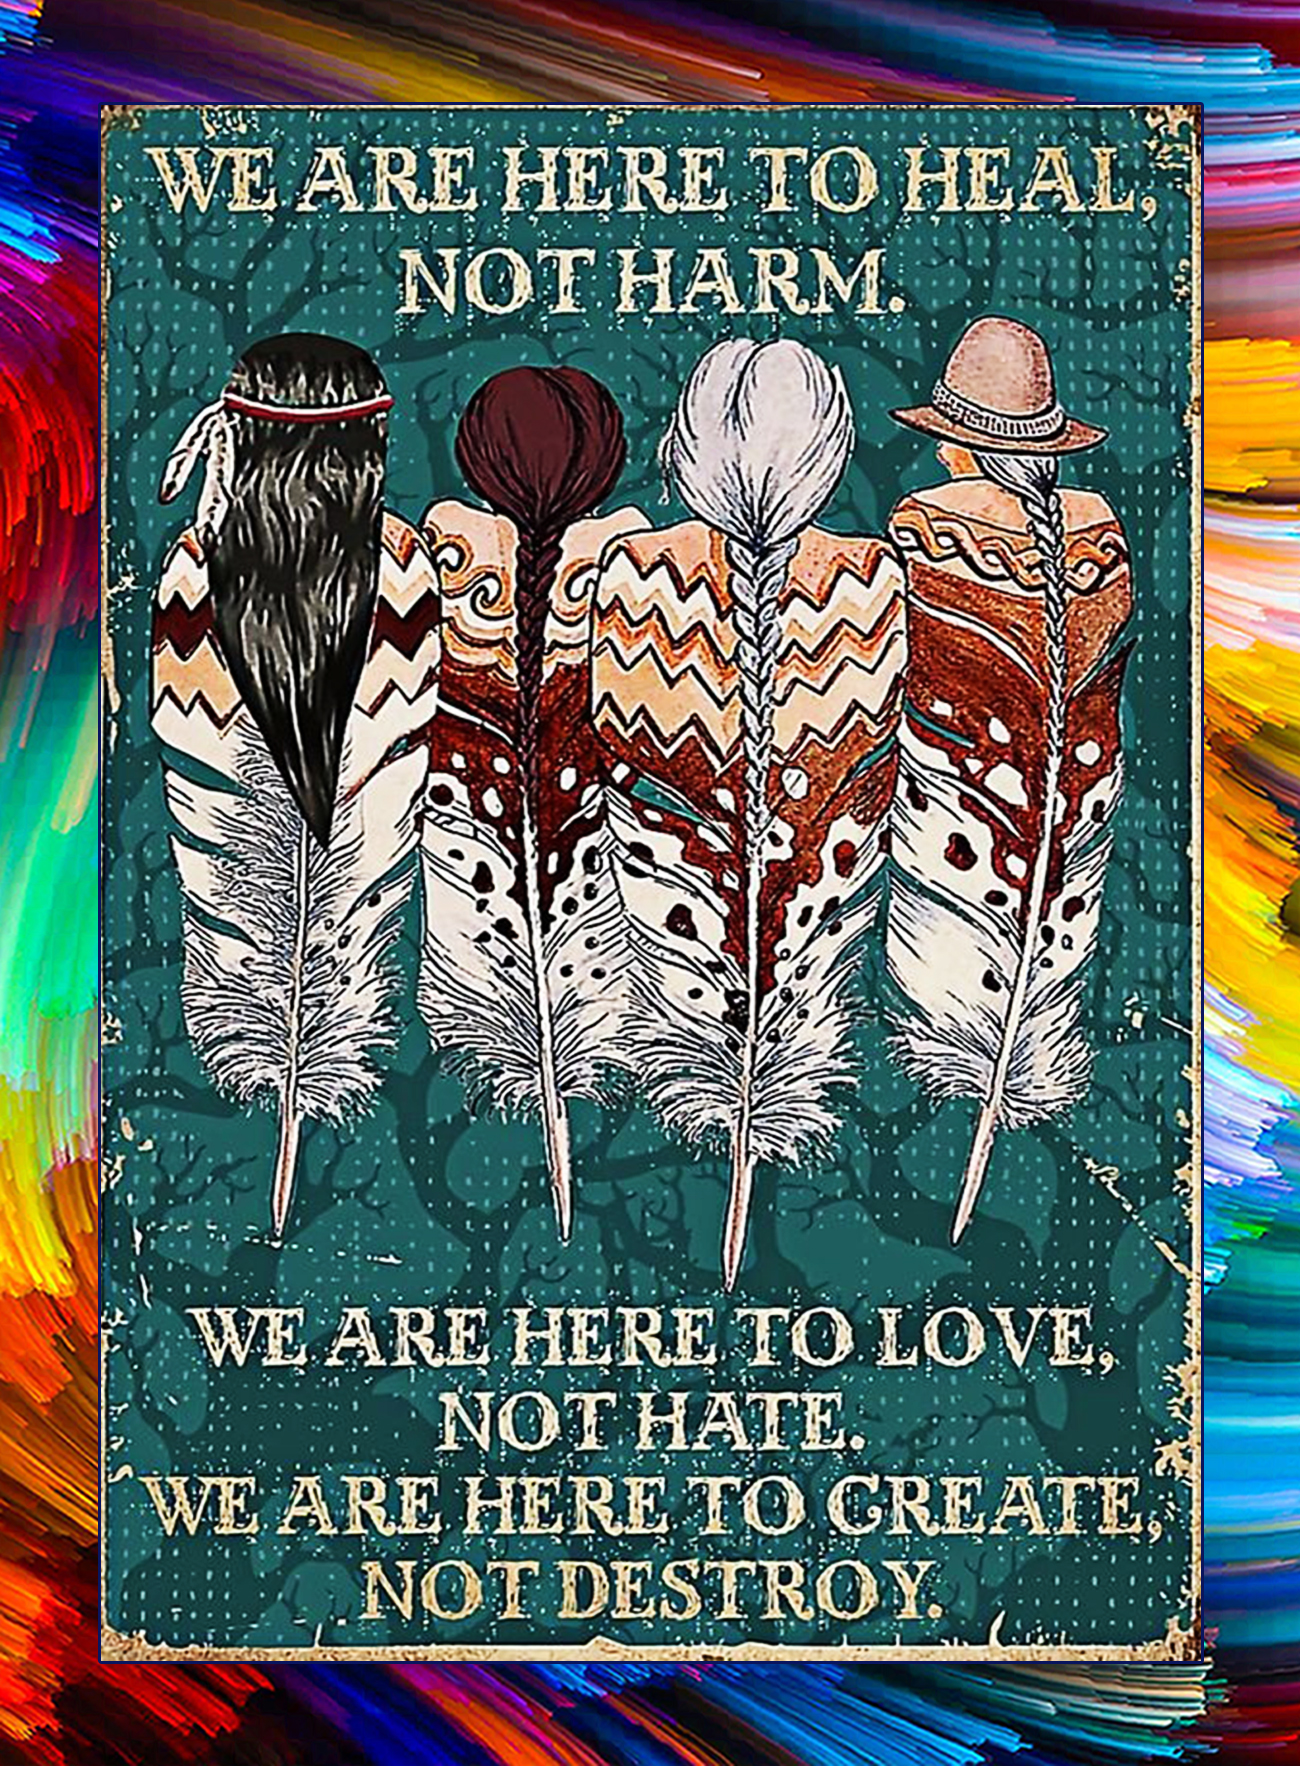 Native american we are here to heal not harm postrer